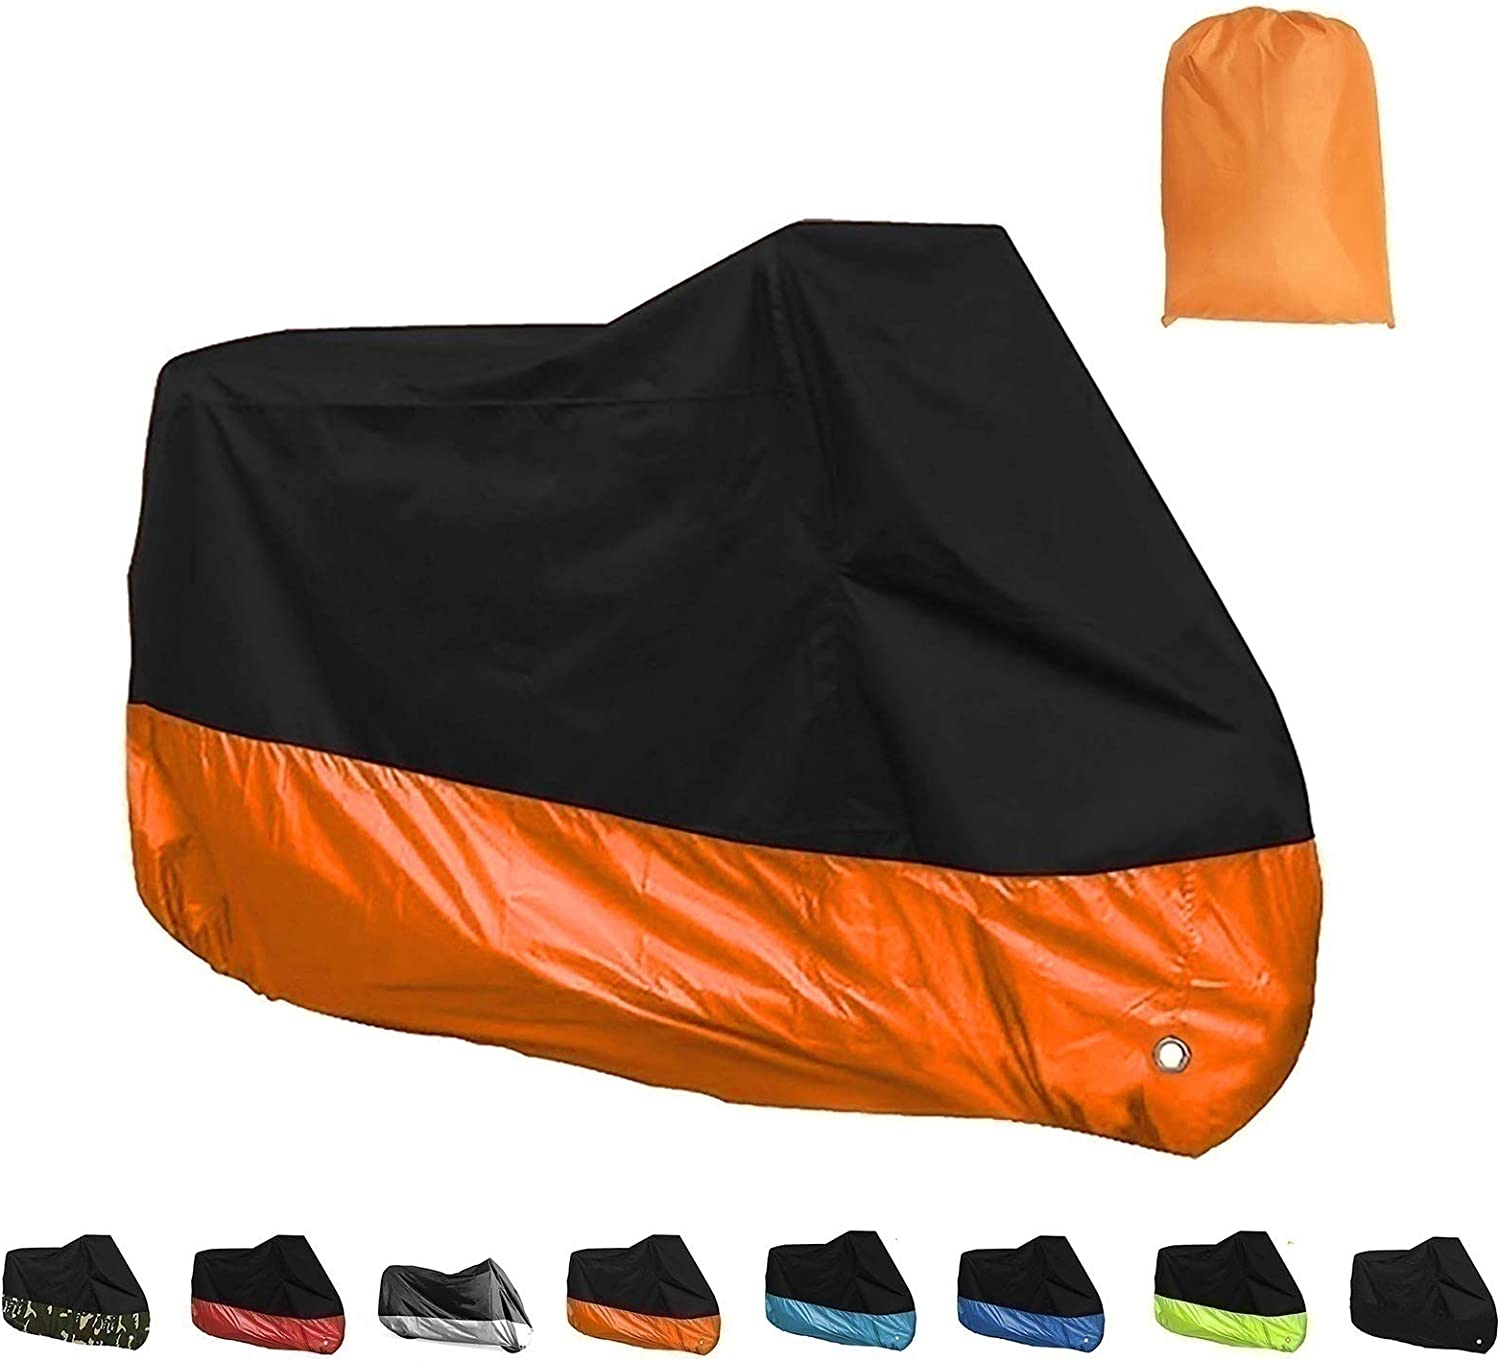 HWHCZ Motorcycle Covers Compatible Piaggio with Cover 1 year Sale item warranty